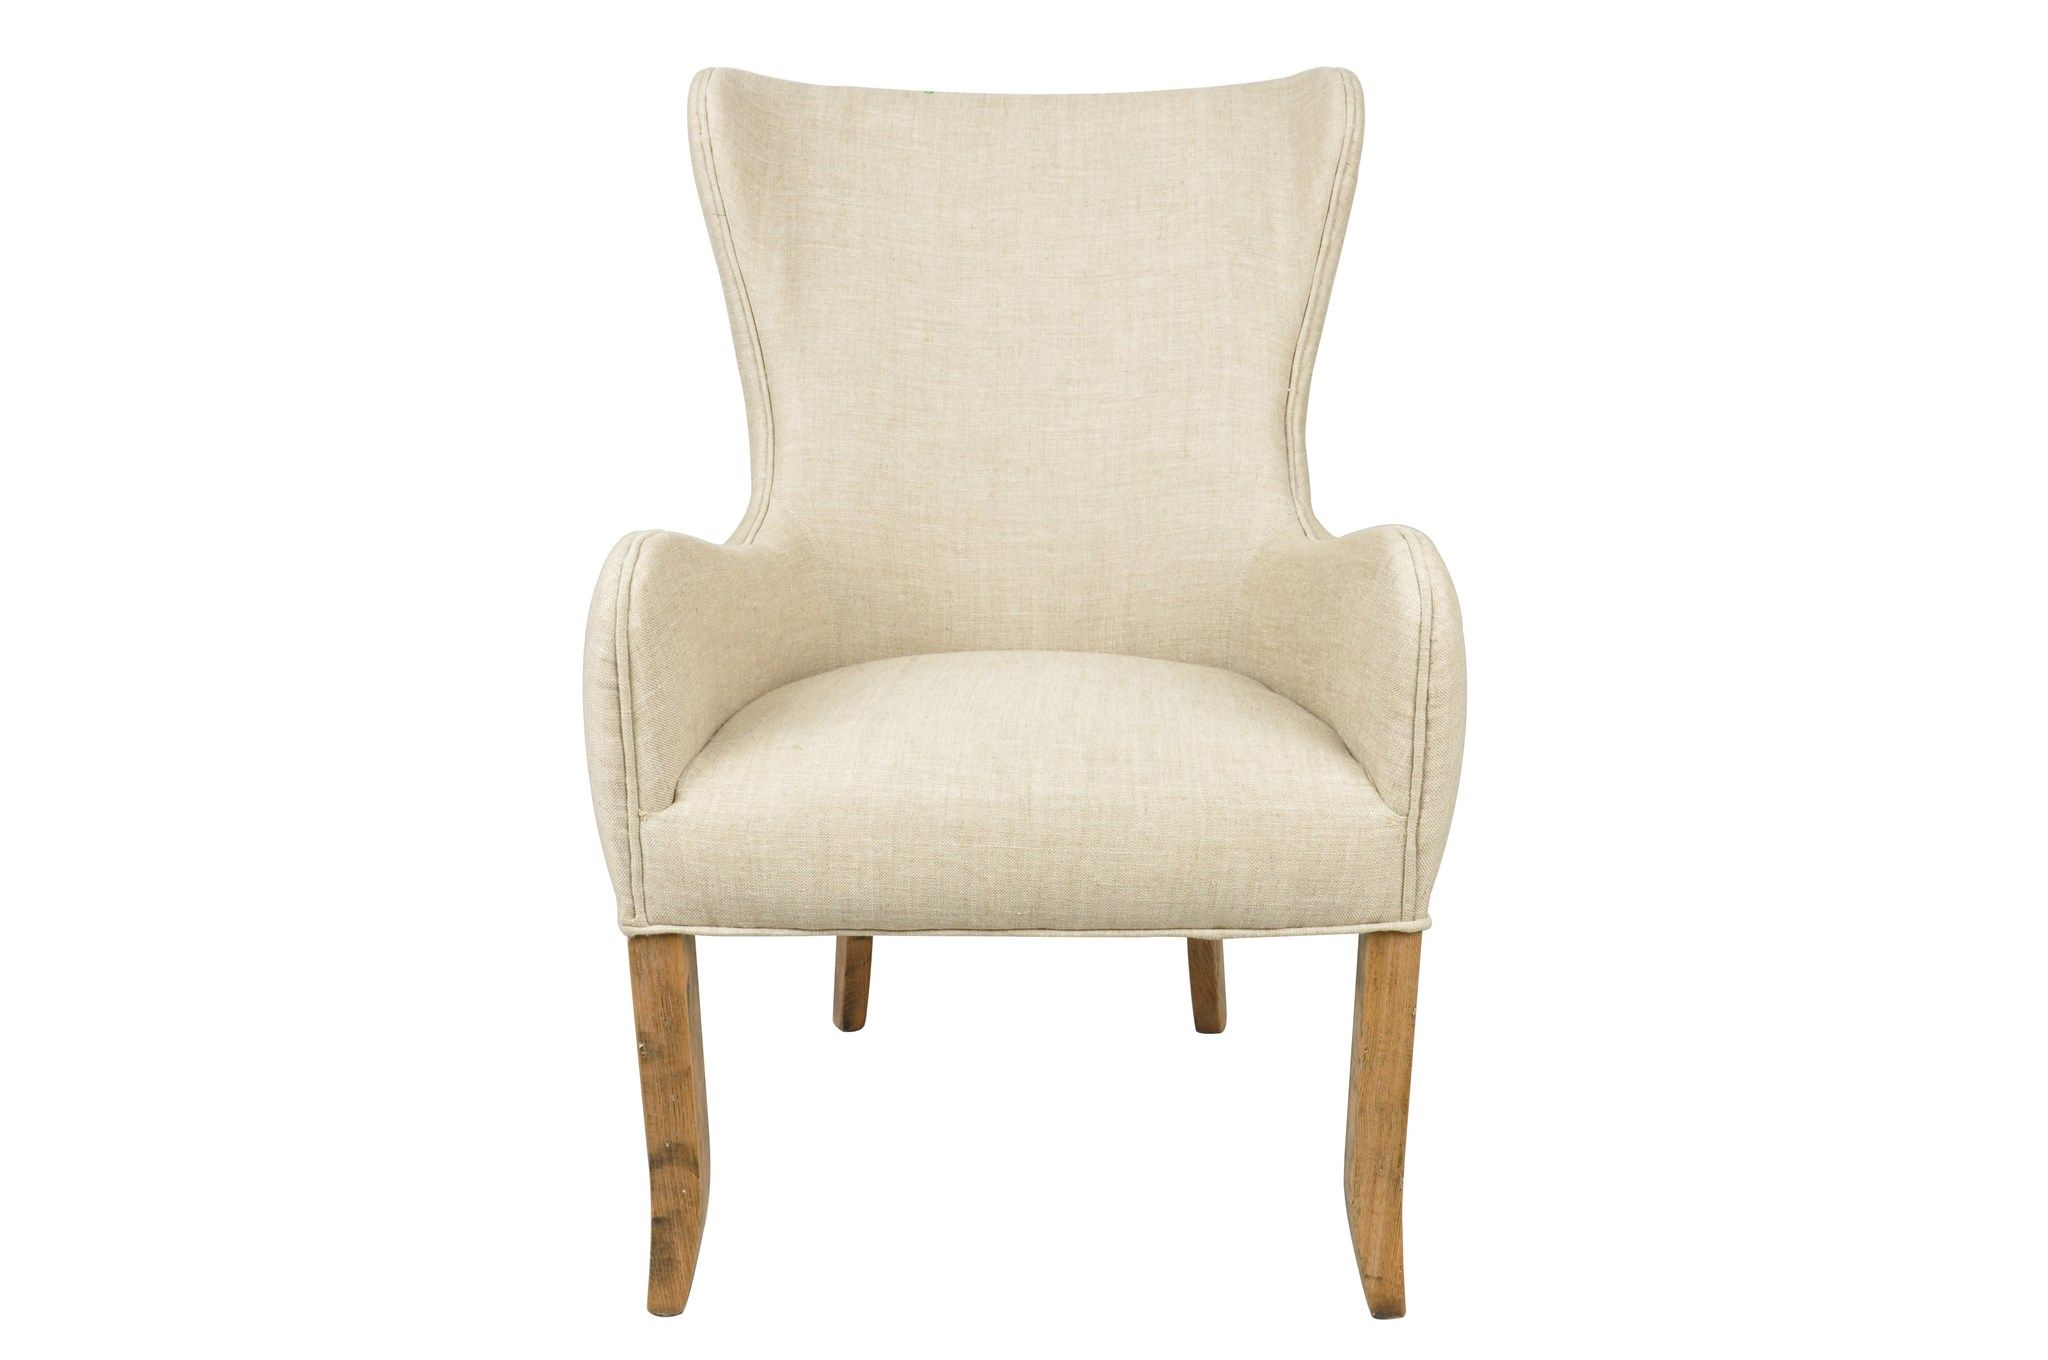 Pin By Ashley Broadhurst On Twin Brooks Furniture Club Chairs Seating